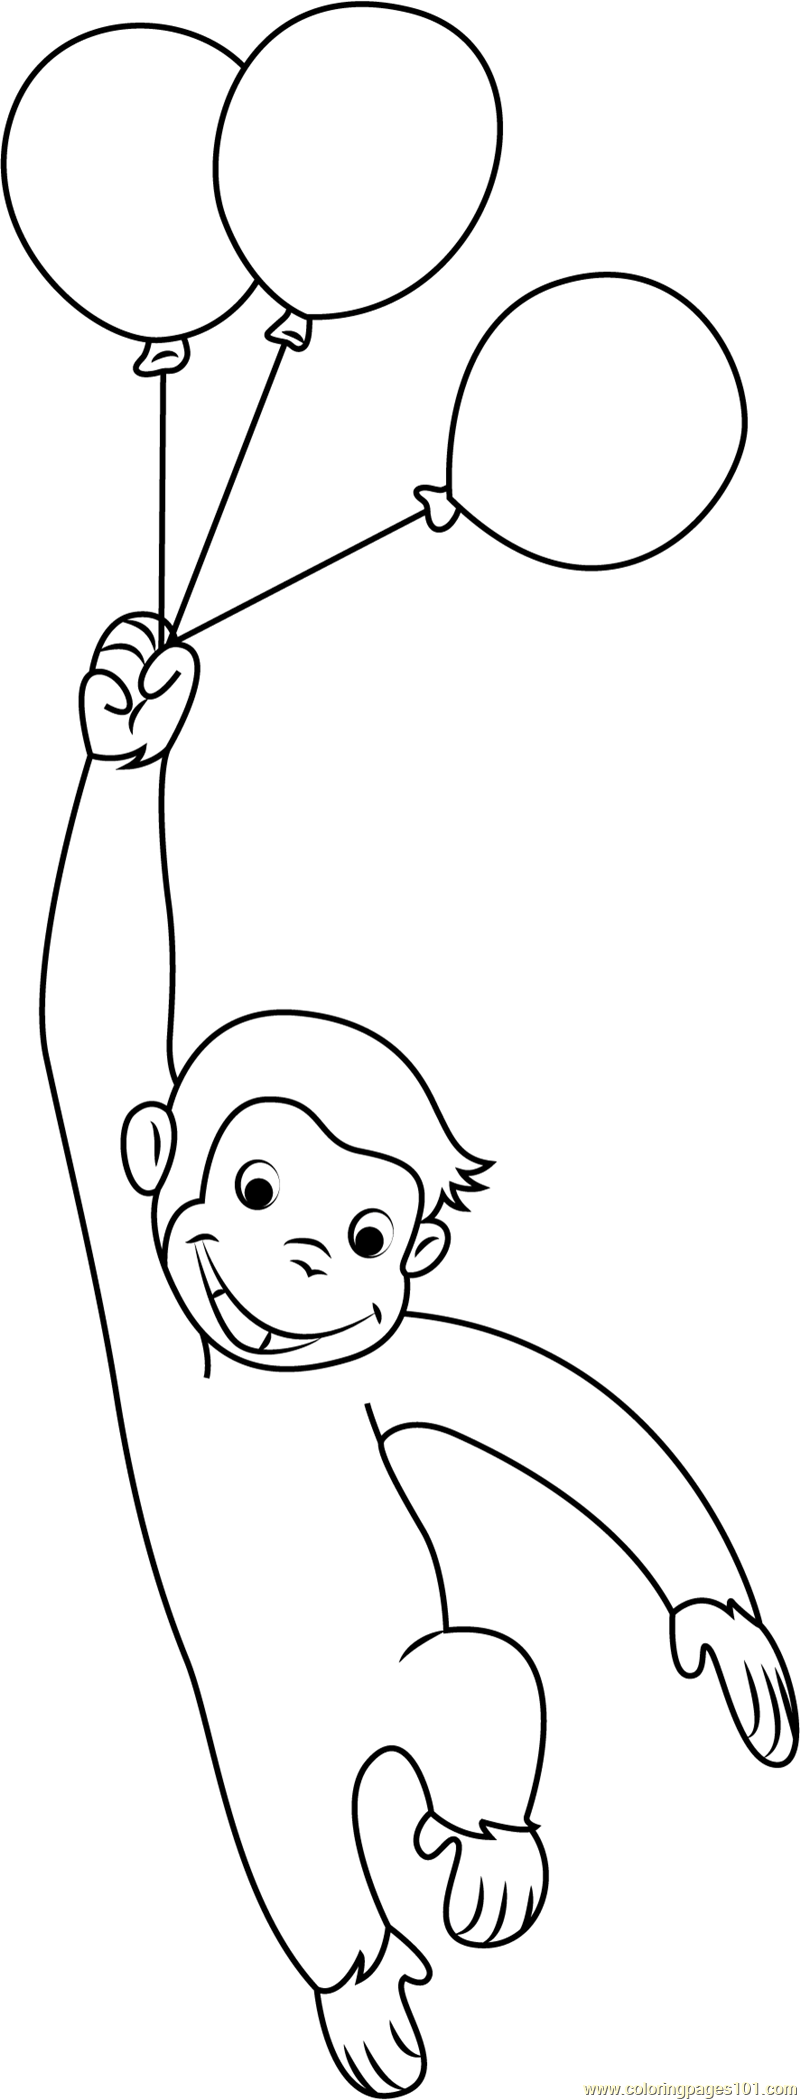 get free high quality hd wallpapers curious george coloring book bulk - Curious George Coloring Book In Bulk